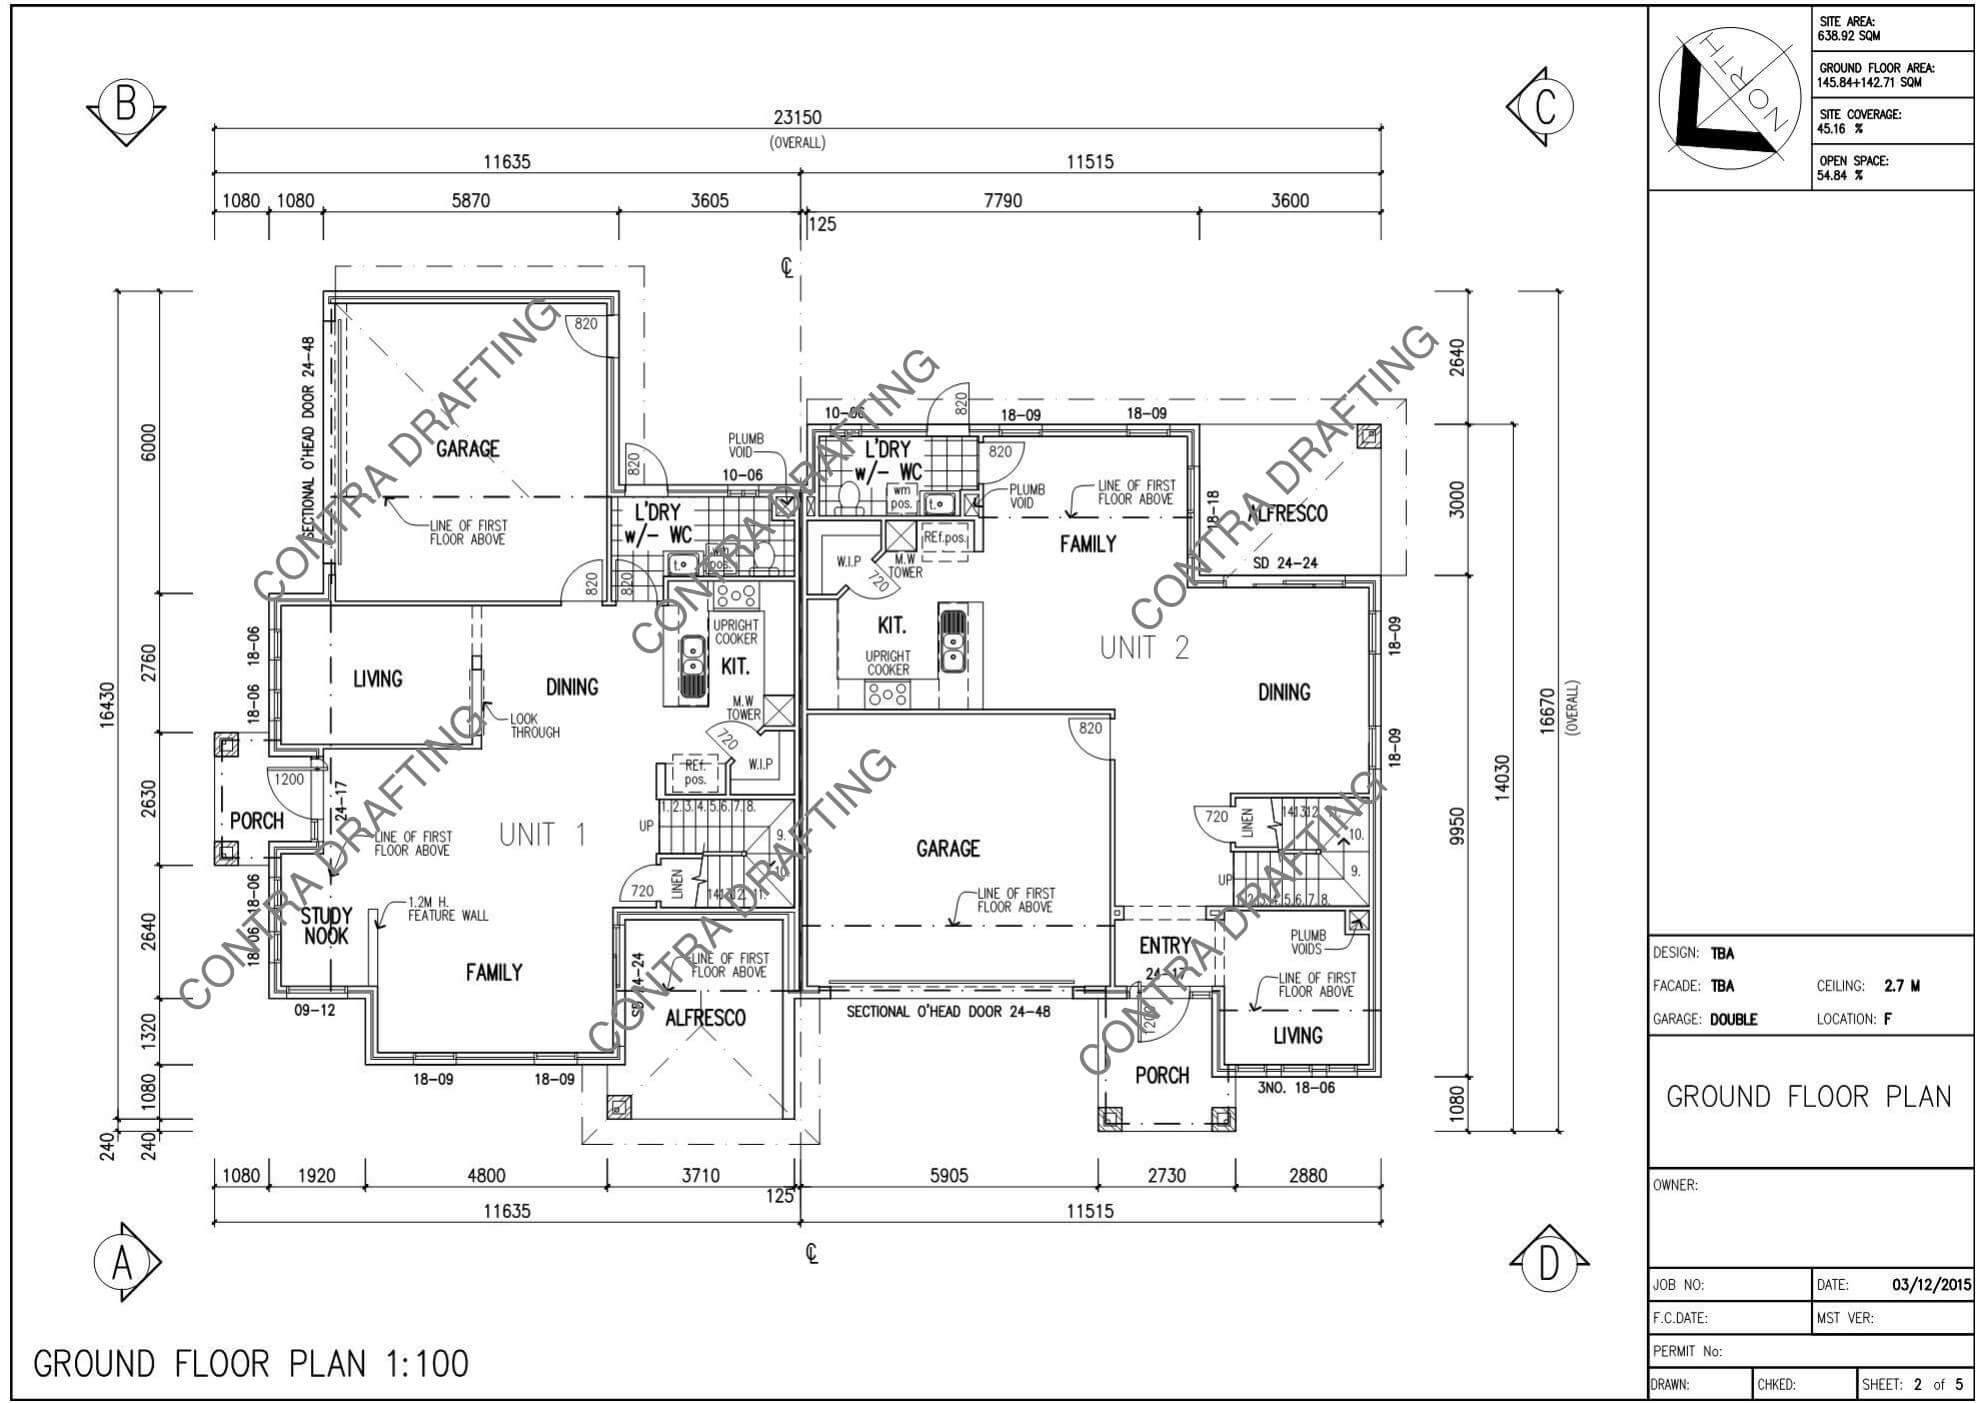 Architectural Plans. Architecture. Design and Drafting for Production